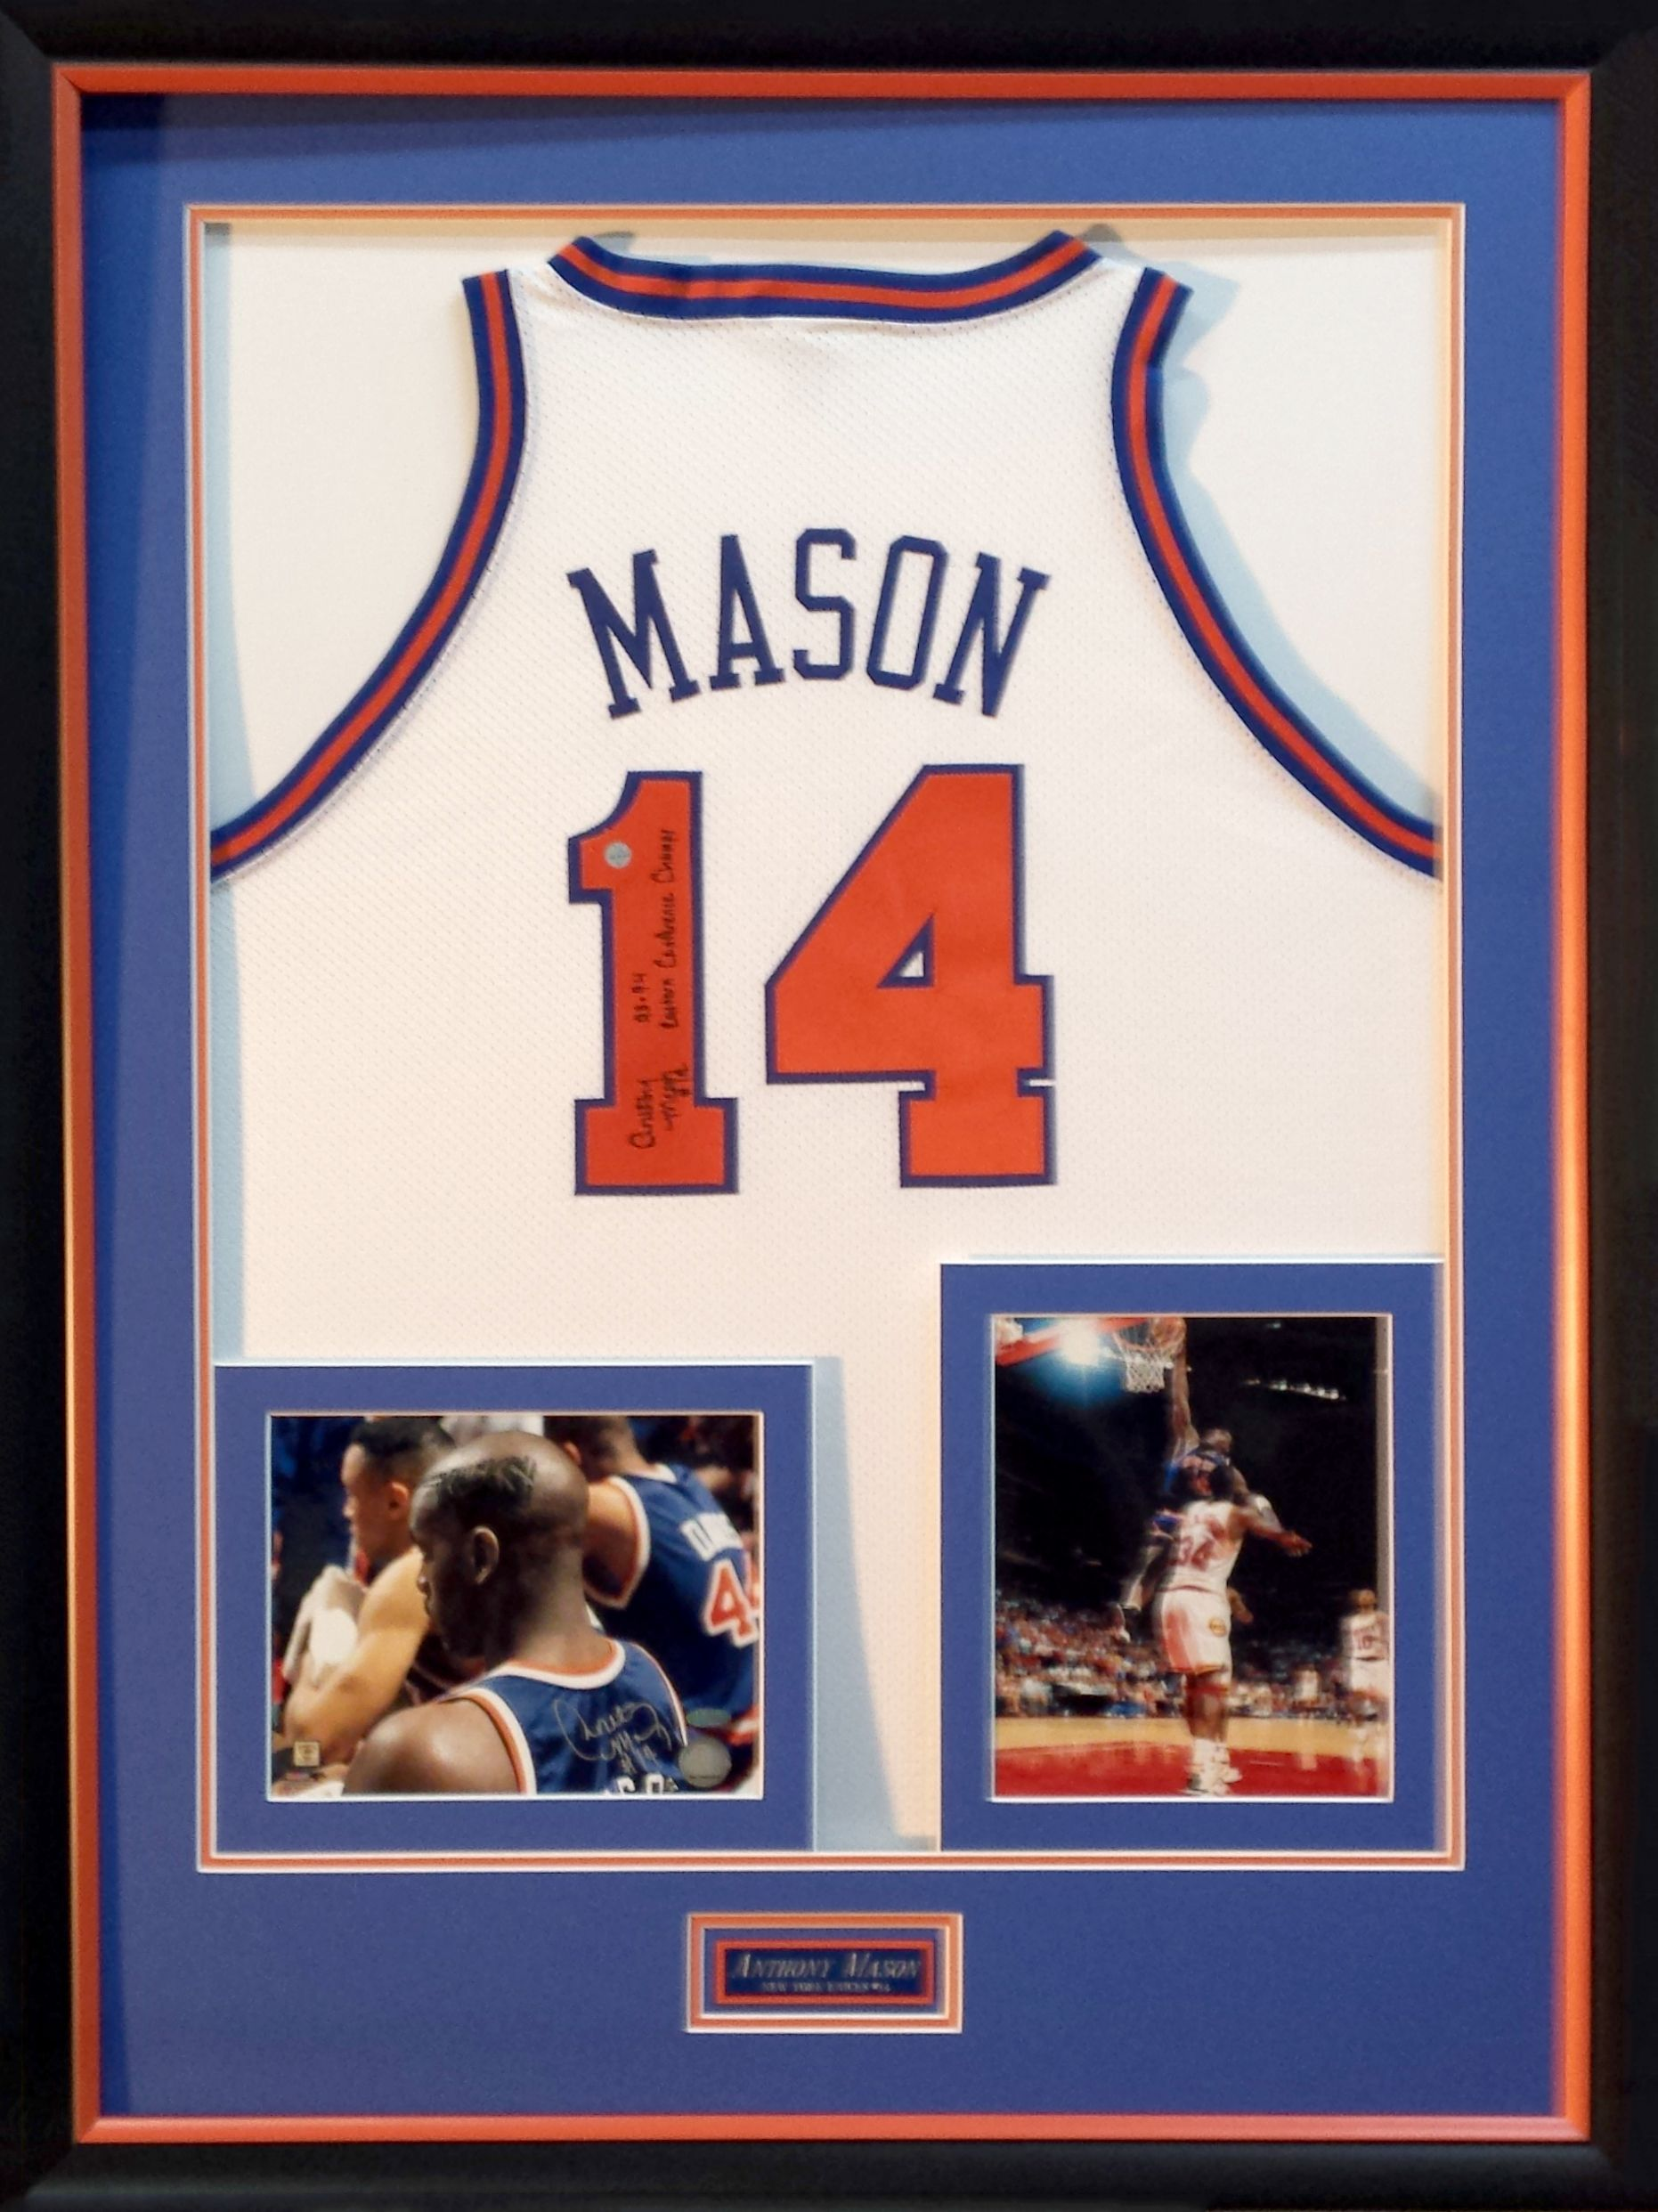 basketball jersey framed with specialty cut mat boards for signed photos and plaque in a black